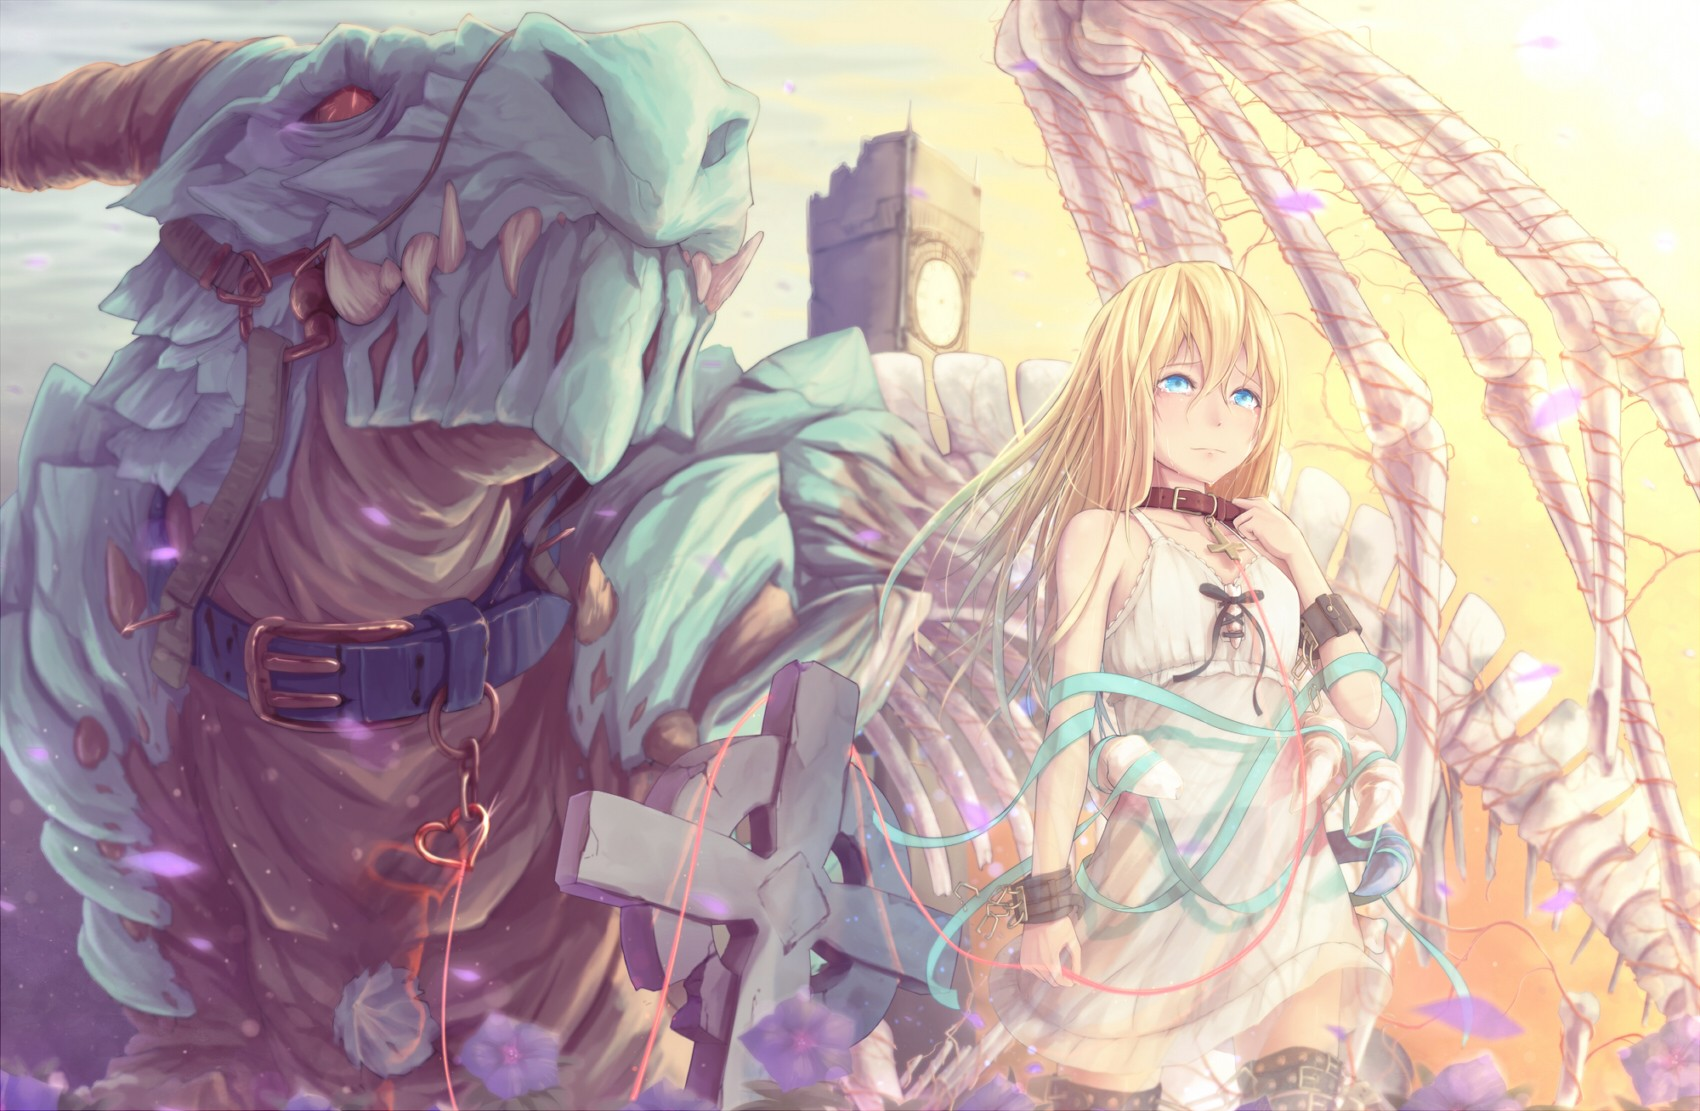 Anime 1700x1111 original characters dragon blonde blue eyes tears Dararito